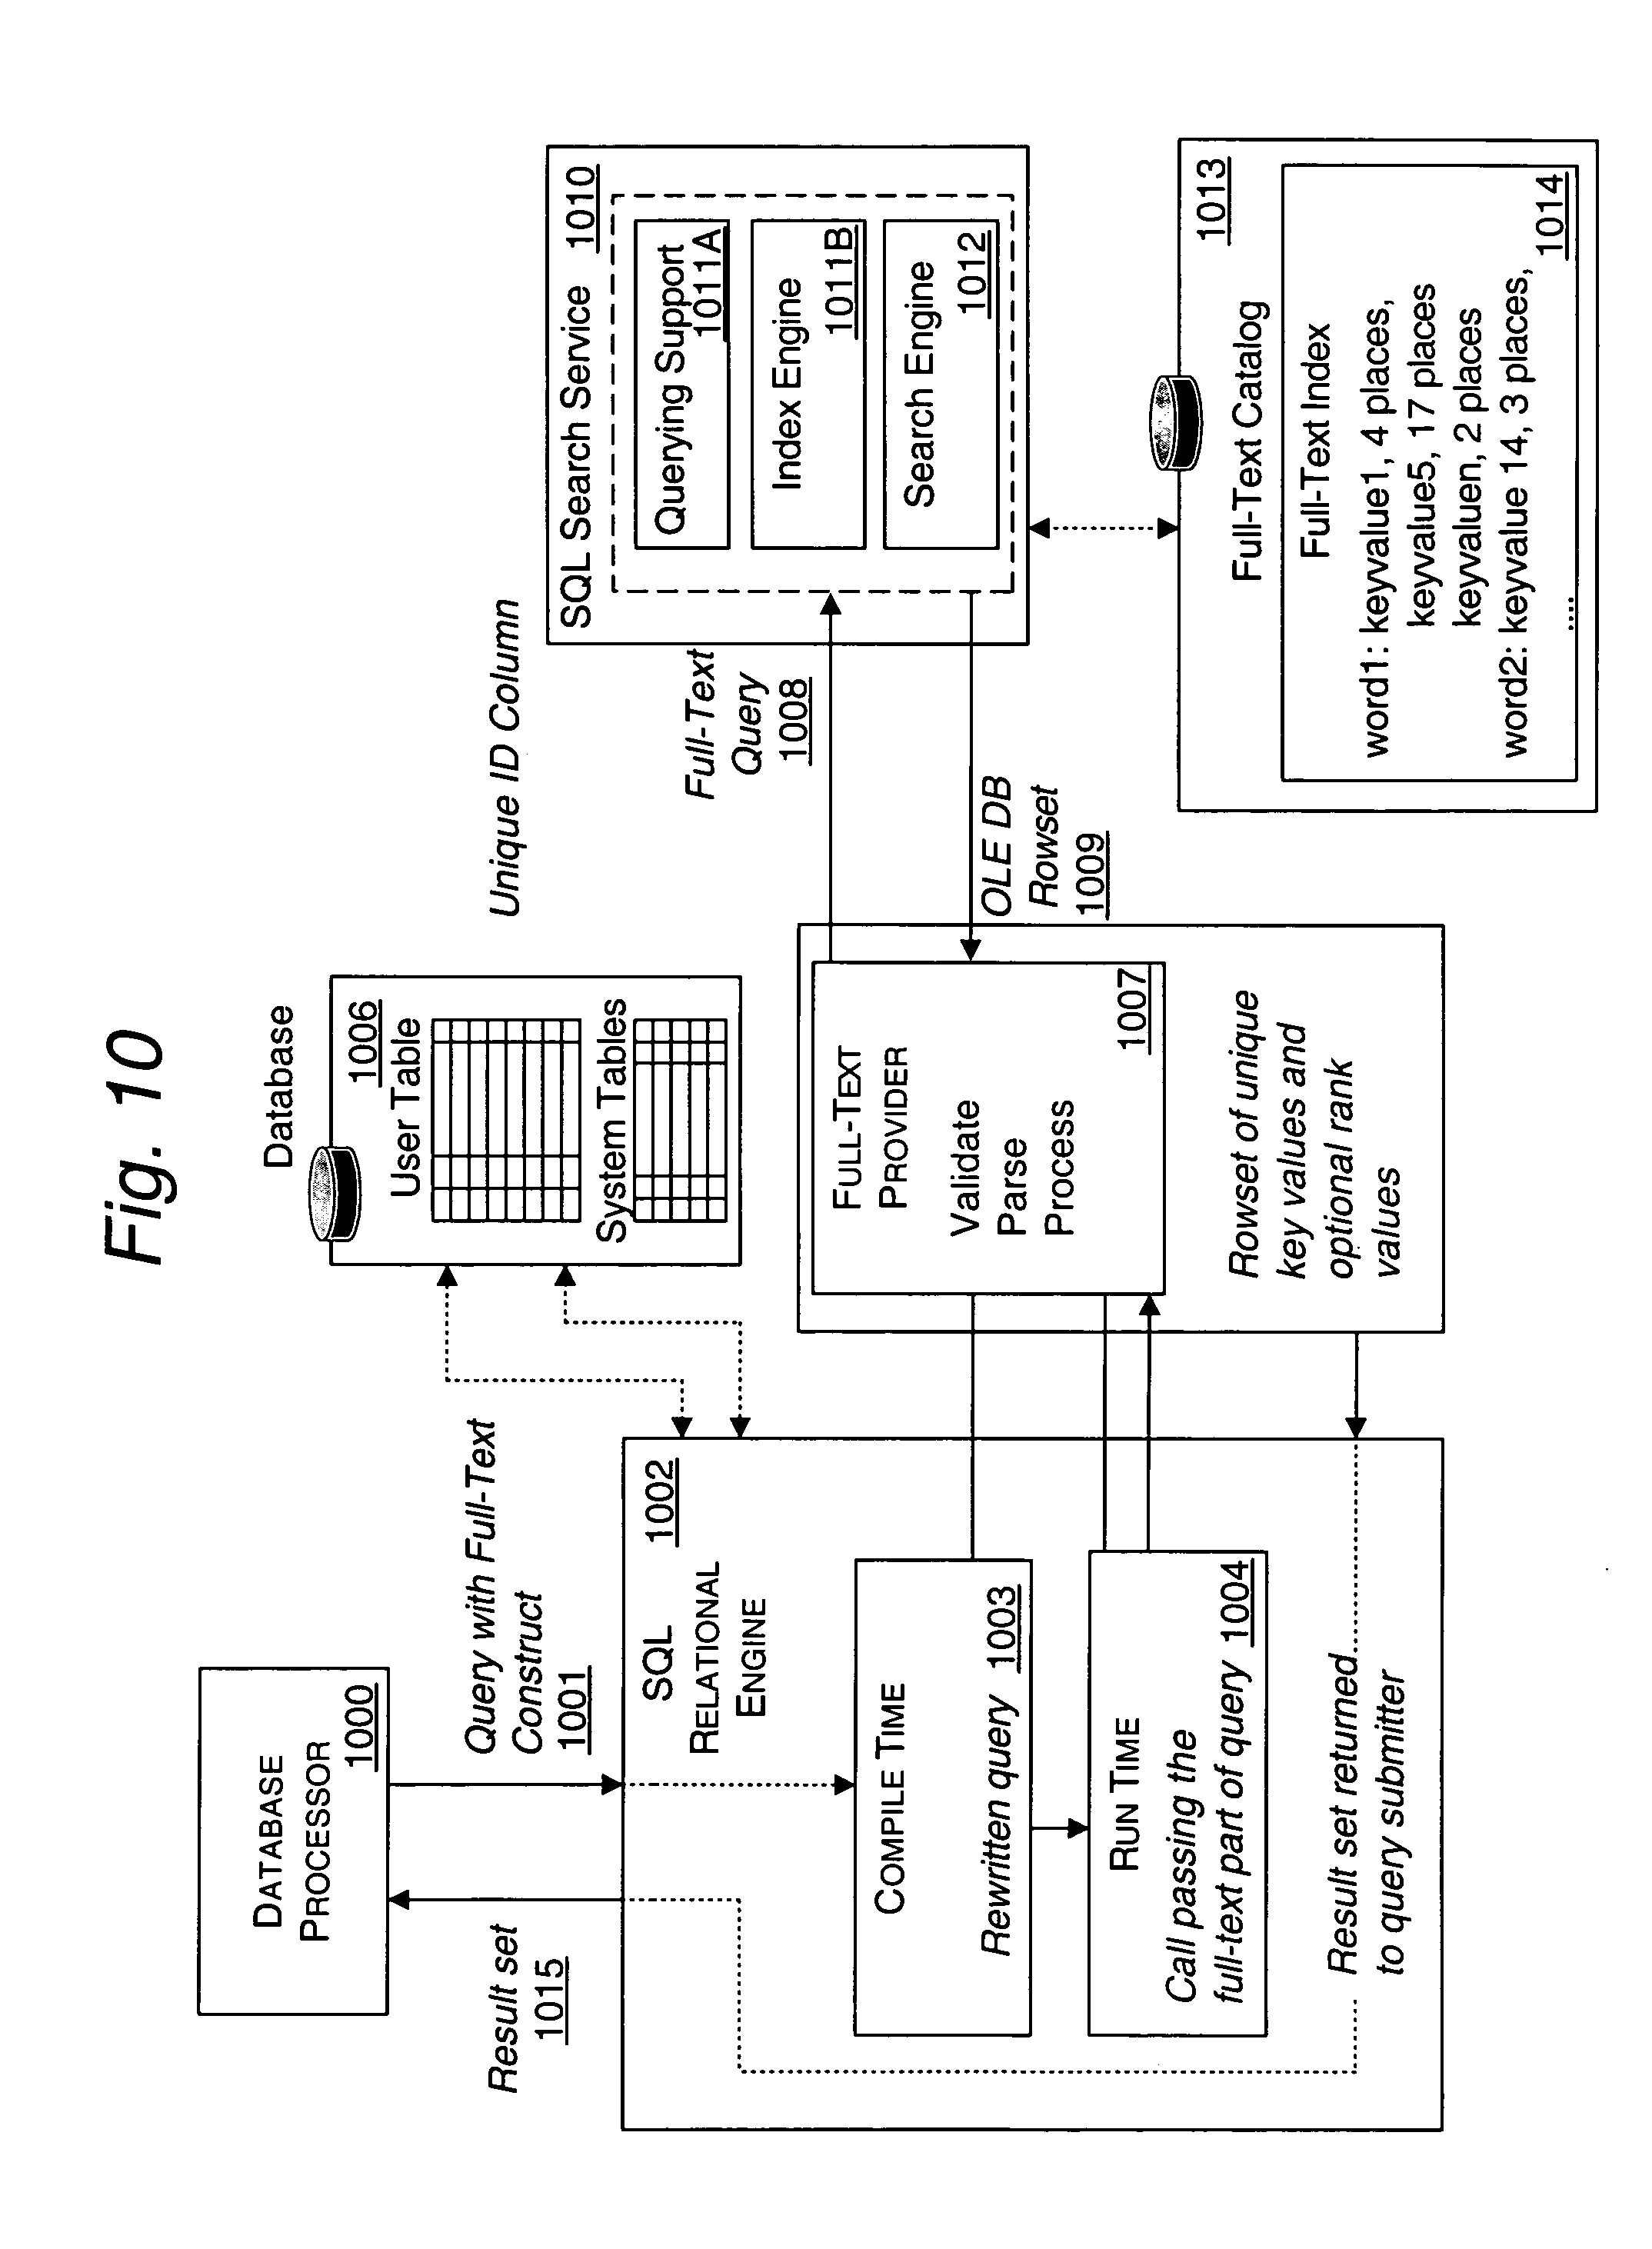 Patent Us 7657424 B2 Wiring Diagram Further 1950 Packard As Well 1997 Images